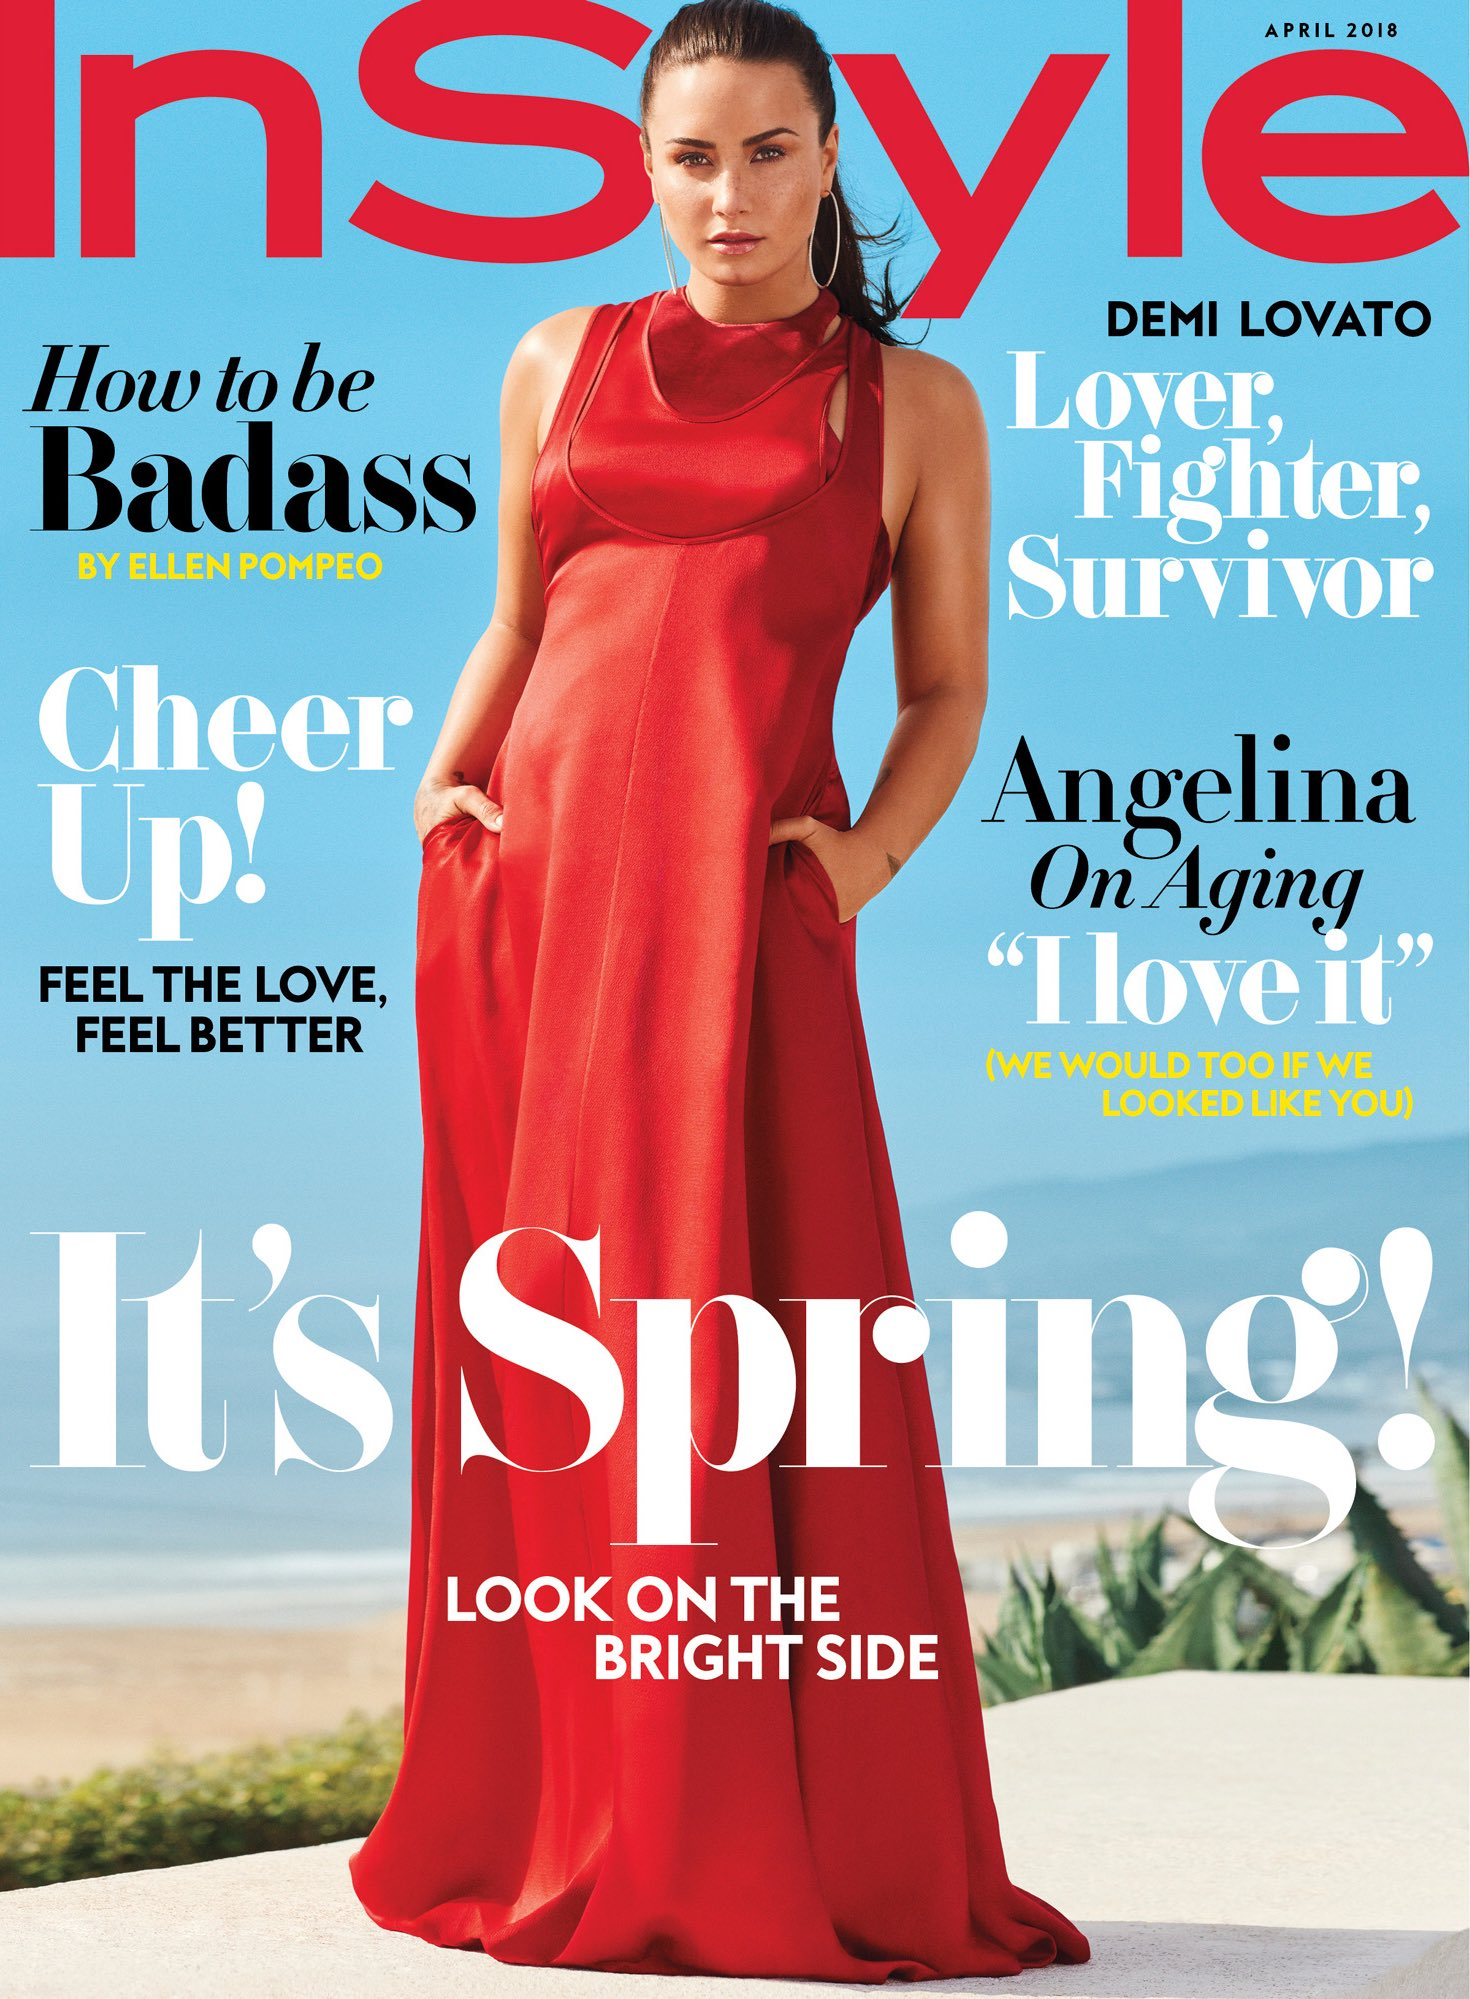 Thank you @InStyle for having me on the April Cover ❤️ https://t.co/Z7GznxcSqN https://t.co/nL0NtupwZF